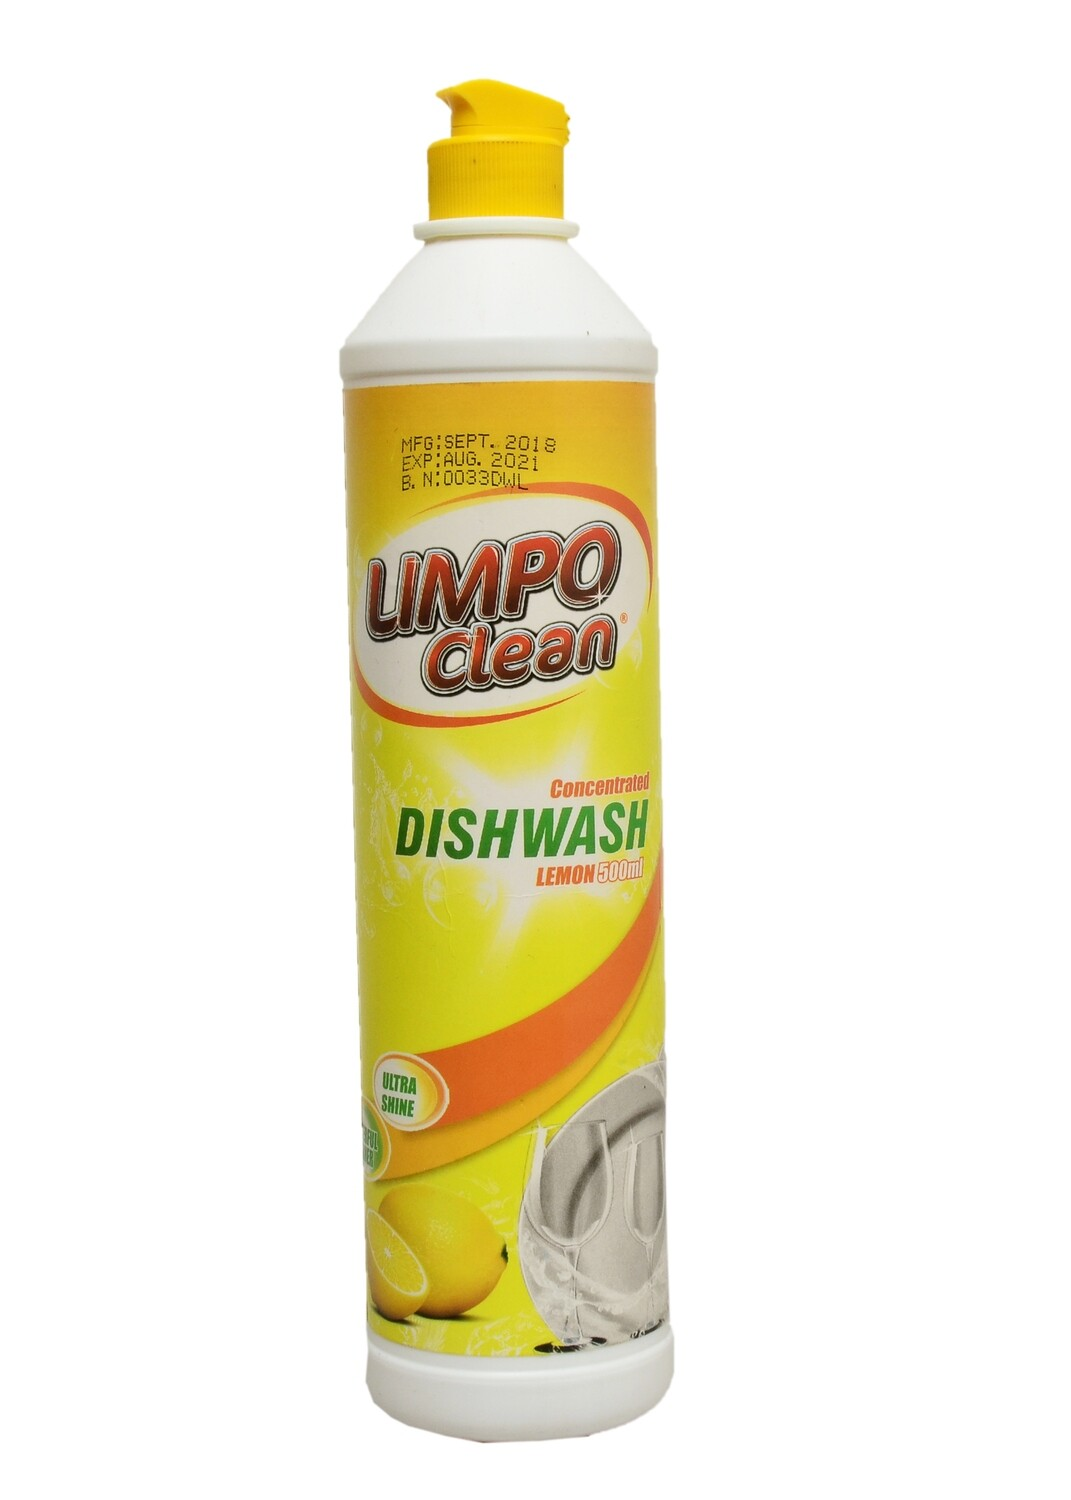 LIMPO CLEAN CONCEN DISHWASHER LEMON500ML